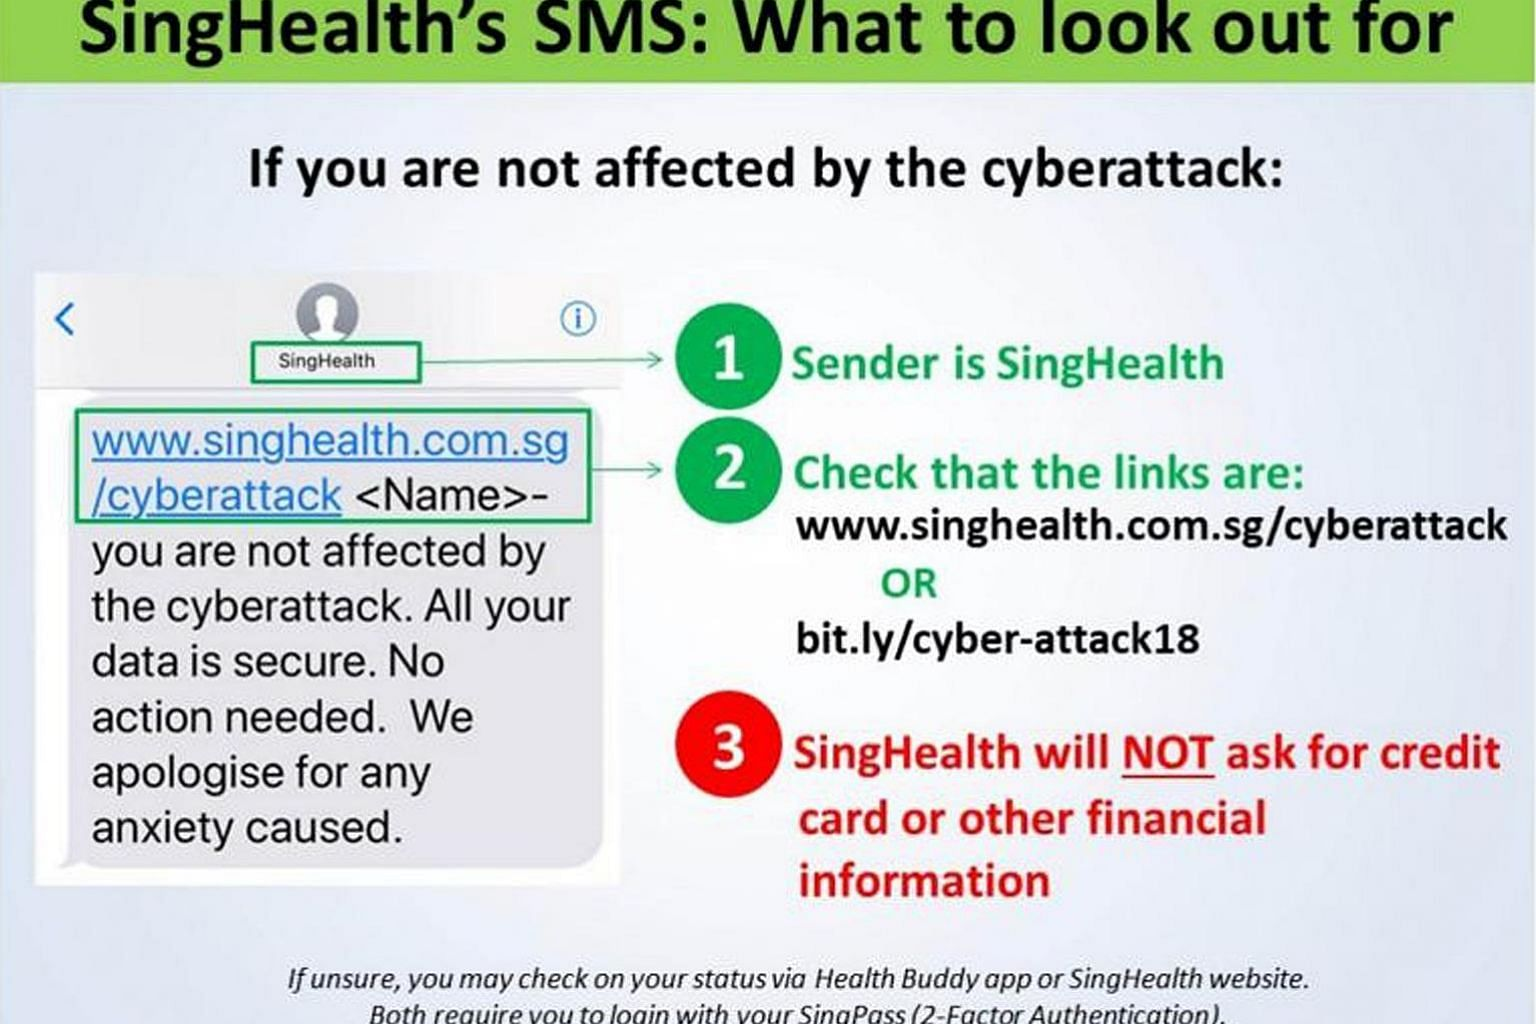 In a Facebook post, SingHealth said that recipients of the SMS notification should check the links in the message and that the sender is SingHealth. It also alerted the public to suspicious phone calls on the cyber attack.